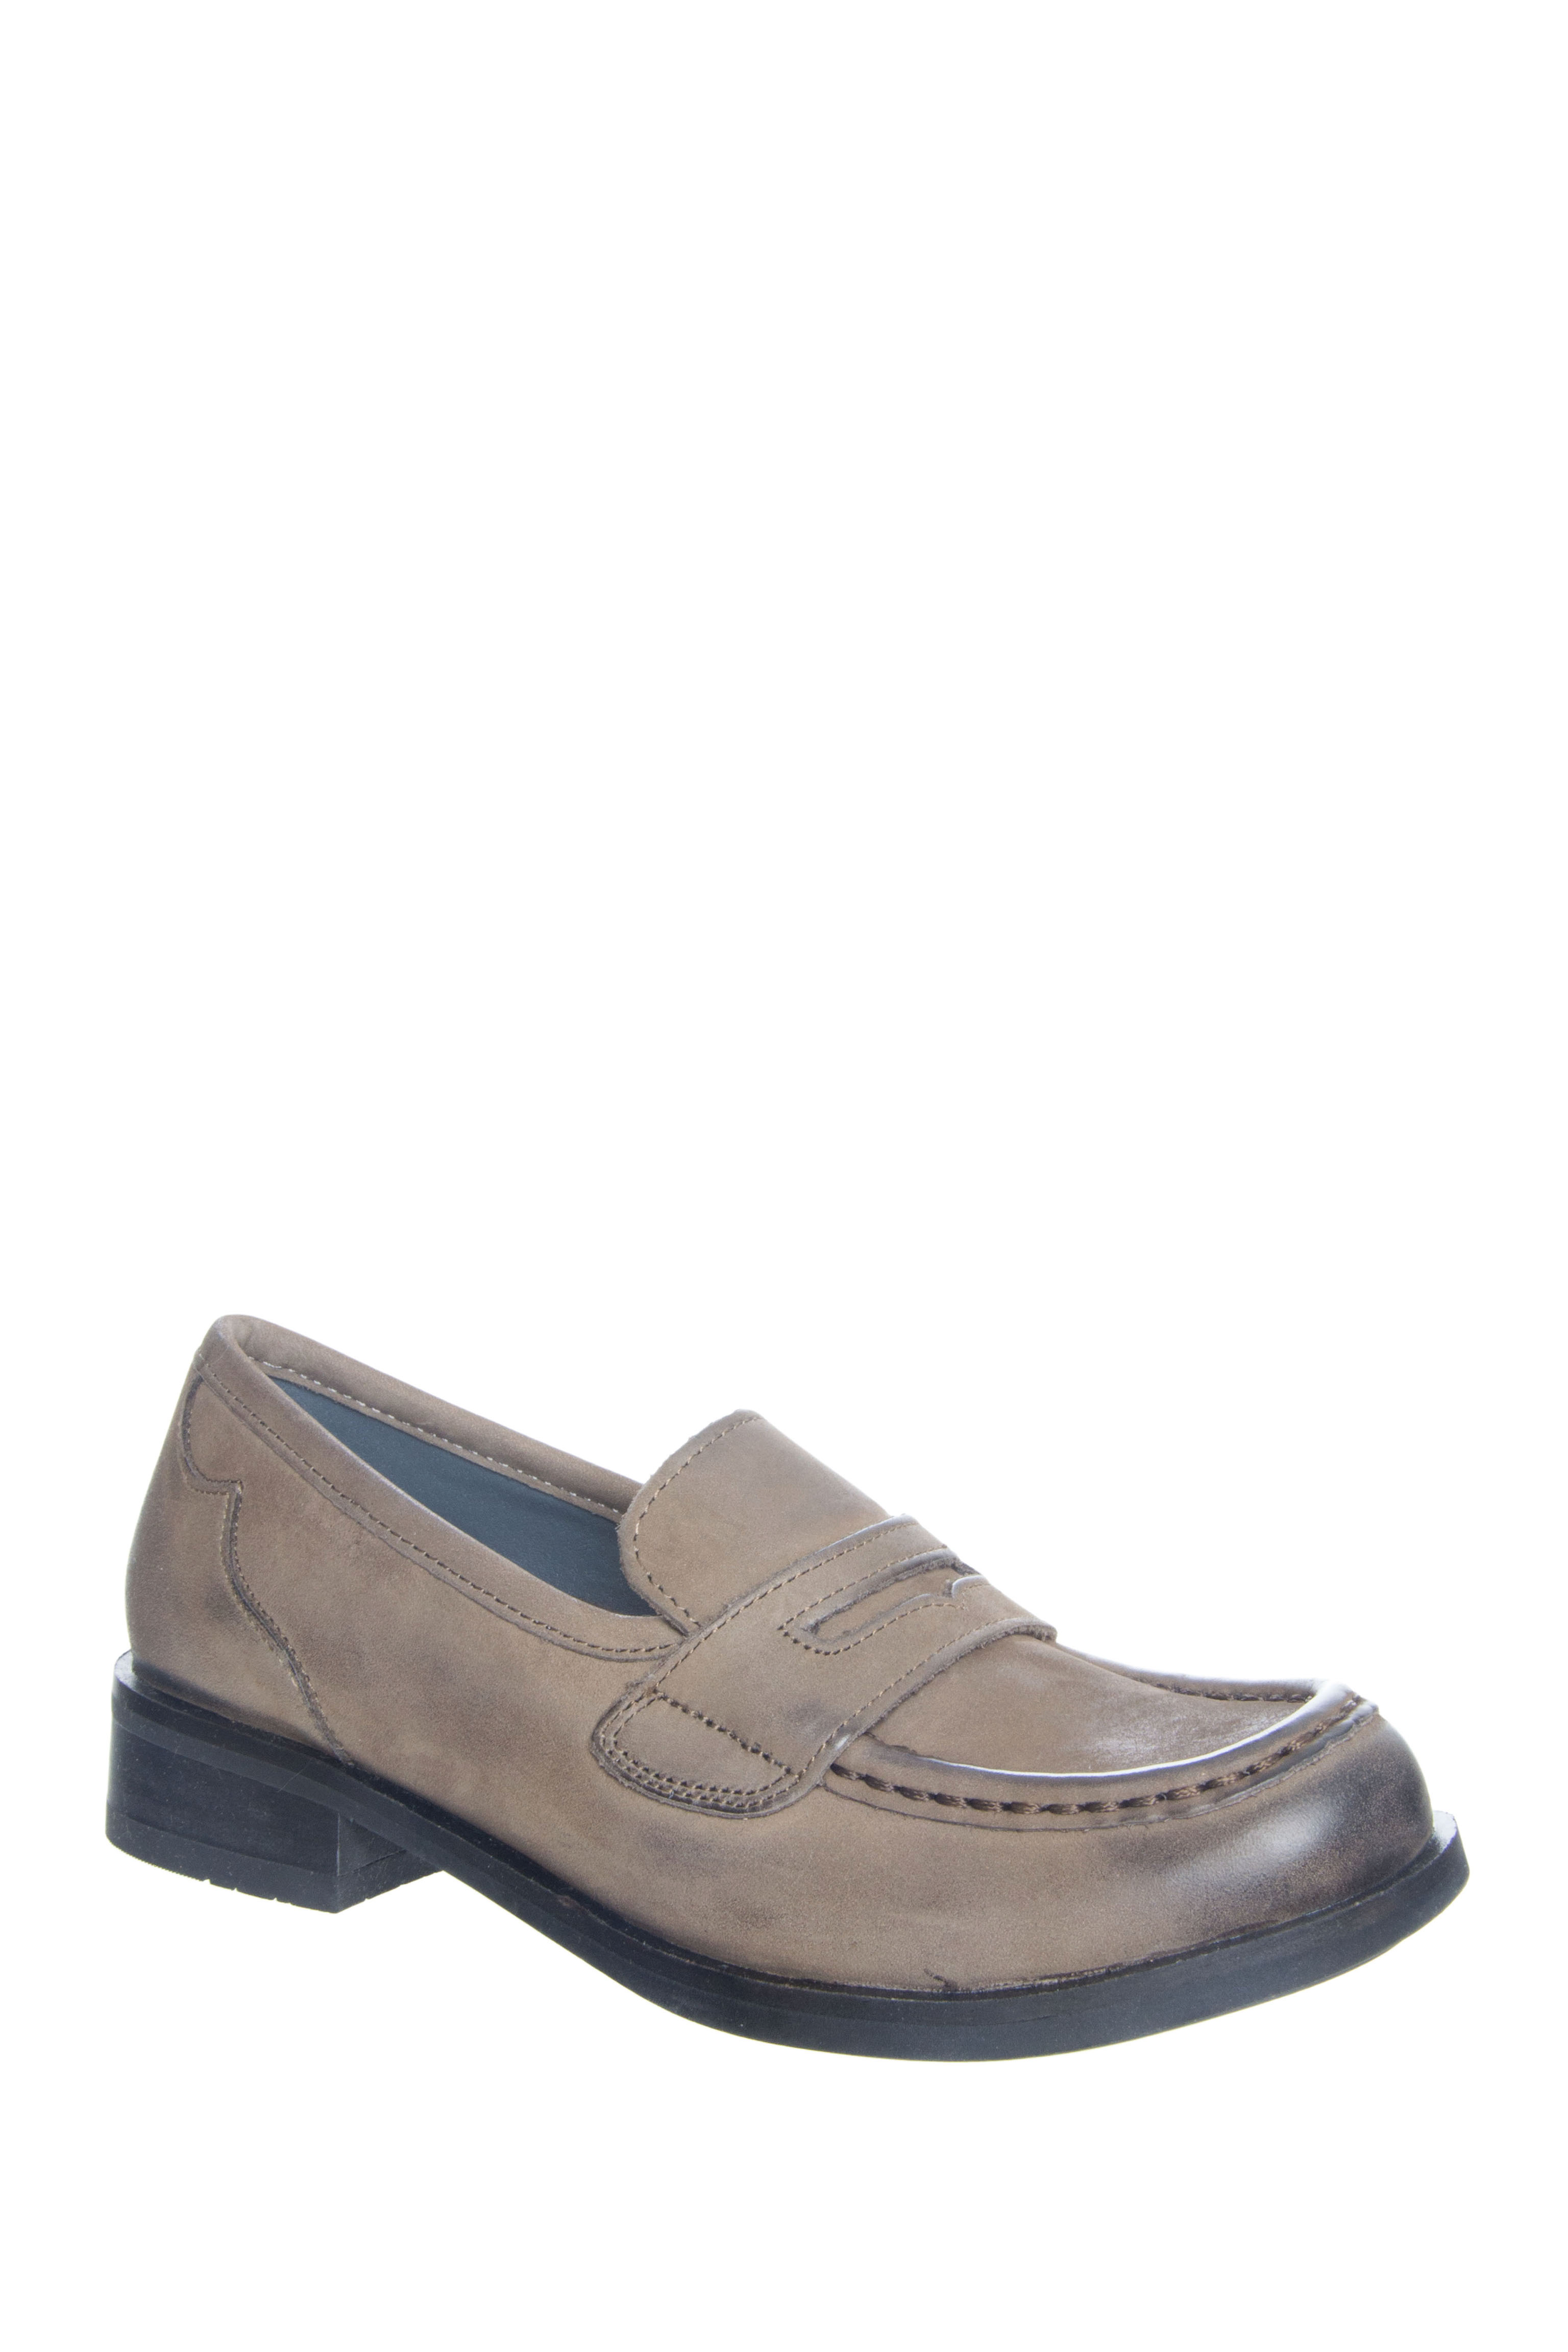 Bussola Nancy Low Heel Loafers - Stone